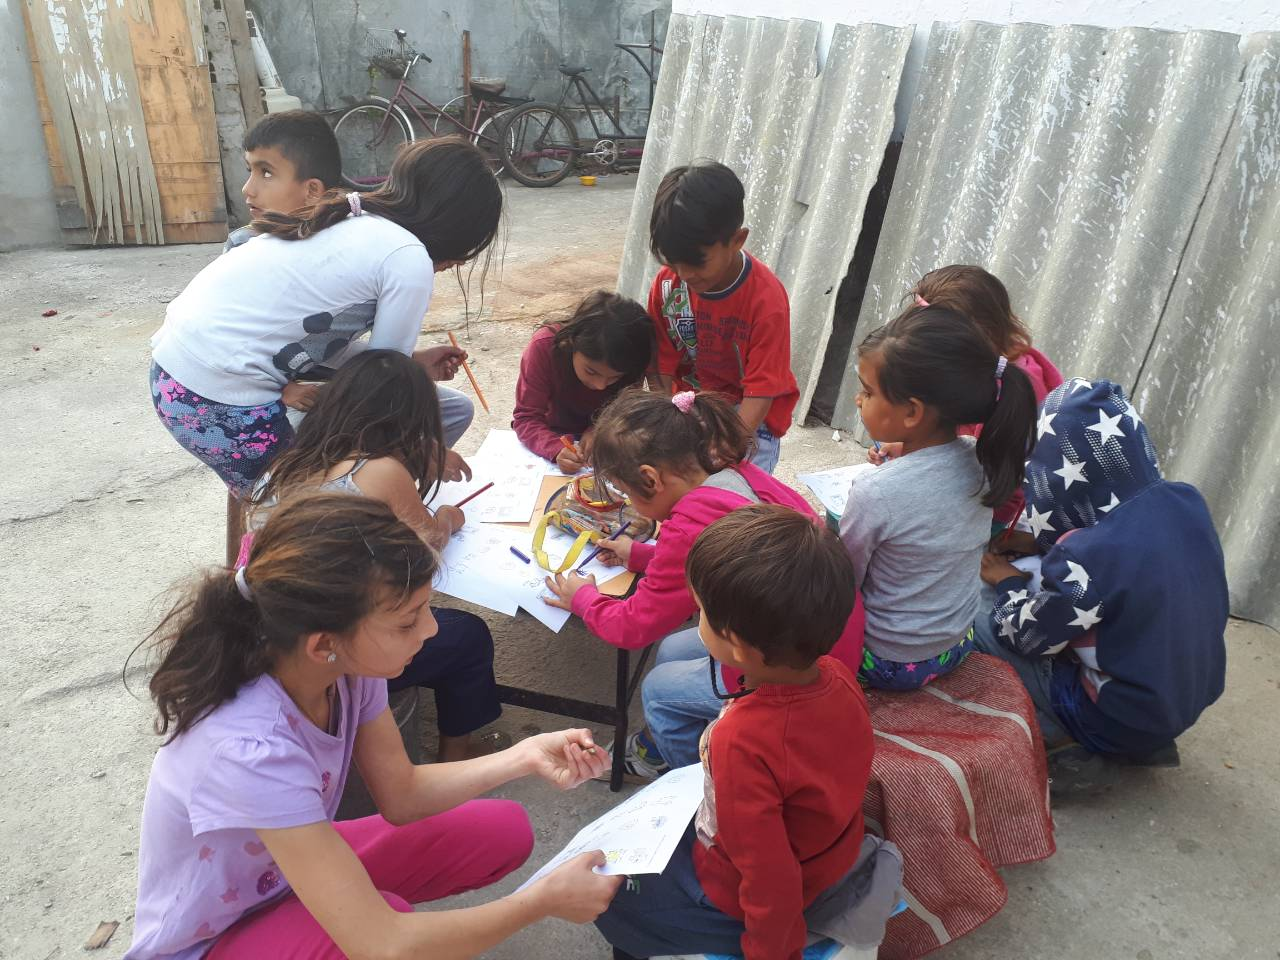 RomaTimes News - About 700 unregistered Roma children will receive